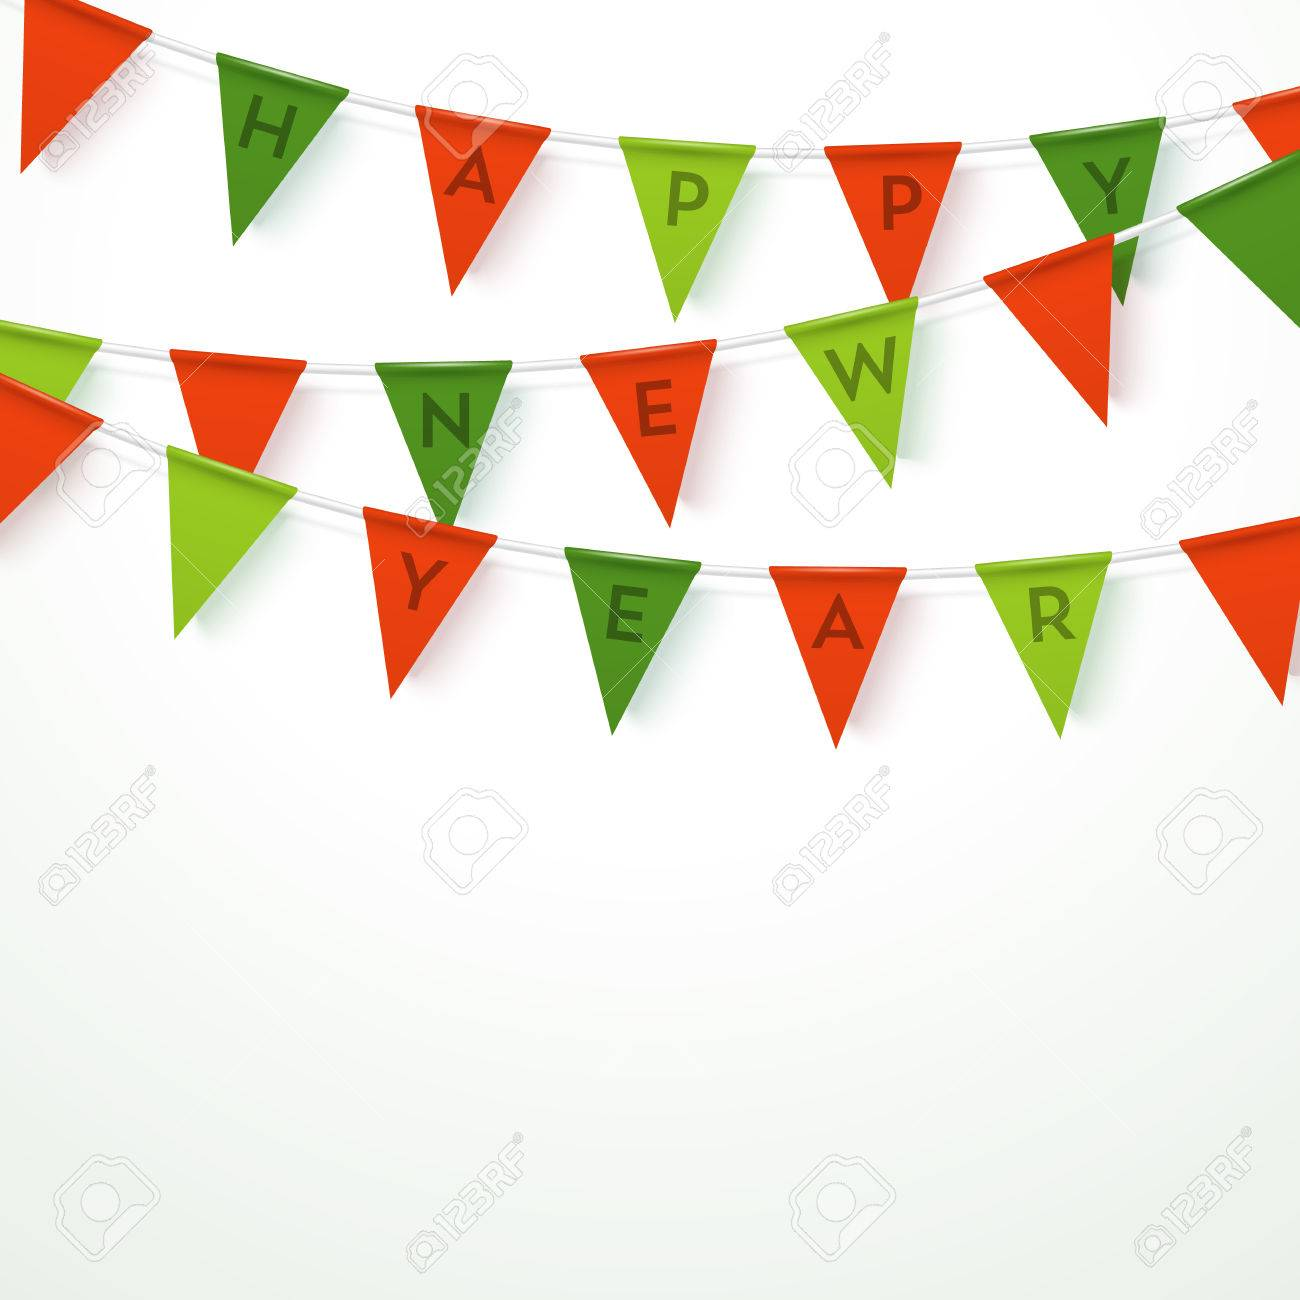 colorful realistic vector flag garland with letters saying happy new year 3 different colors